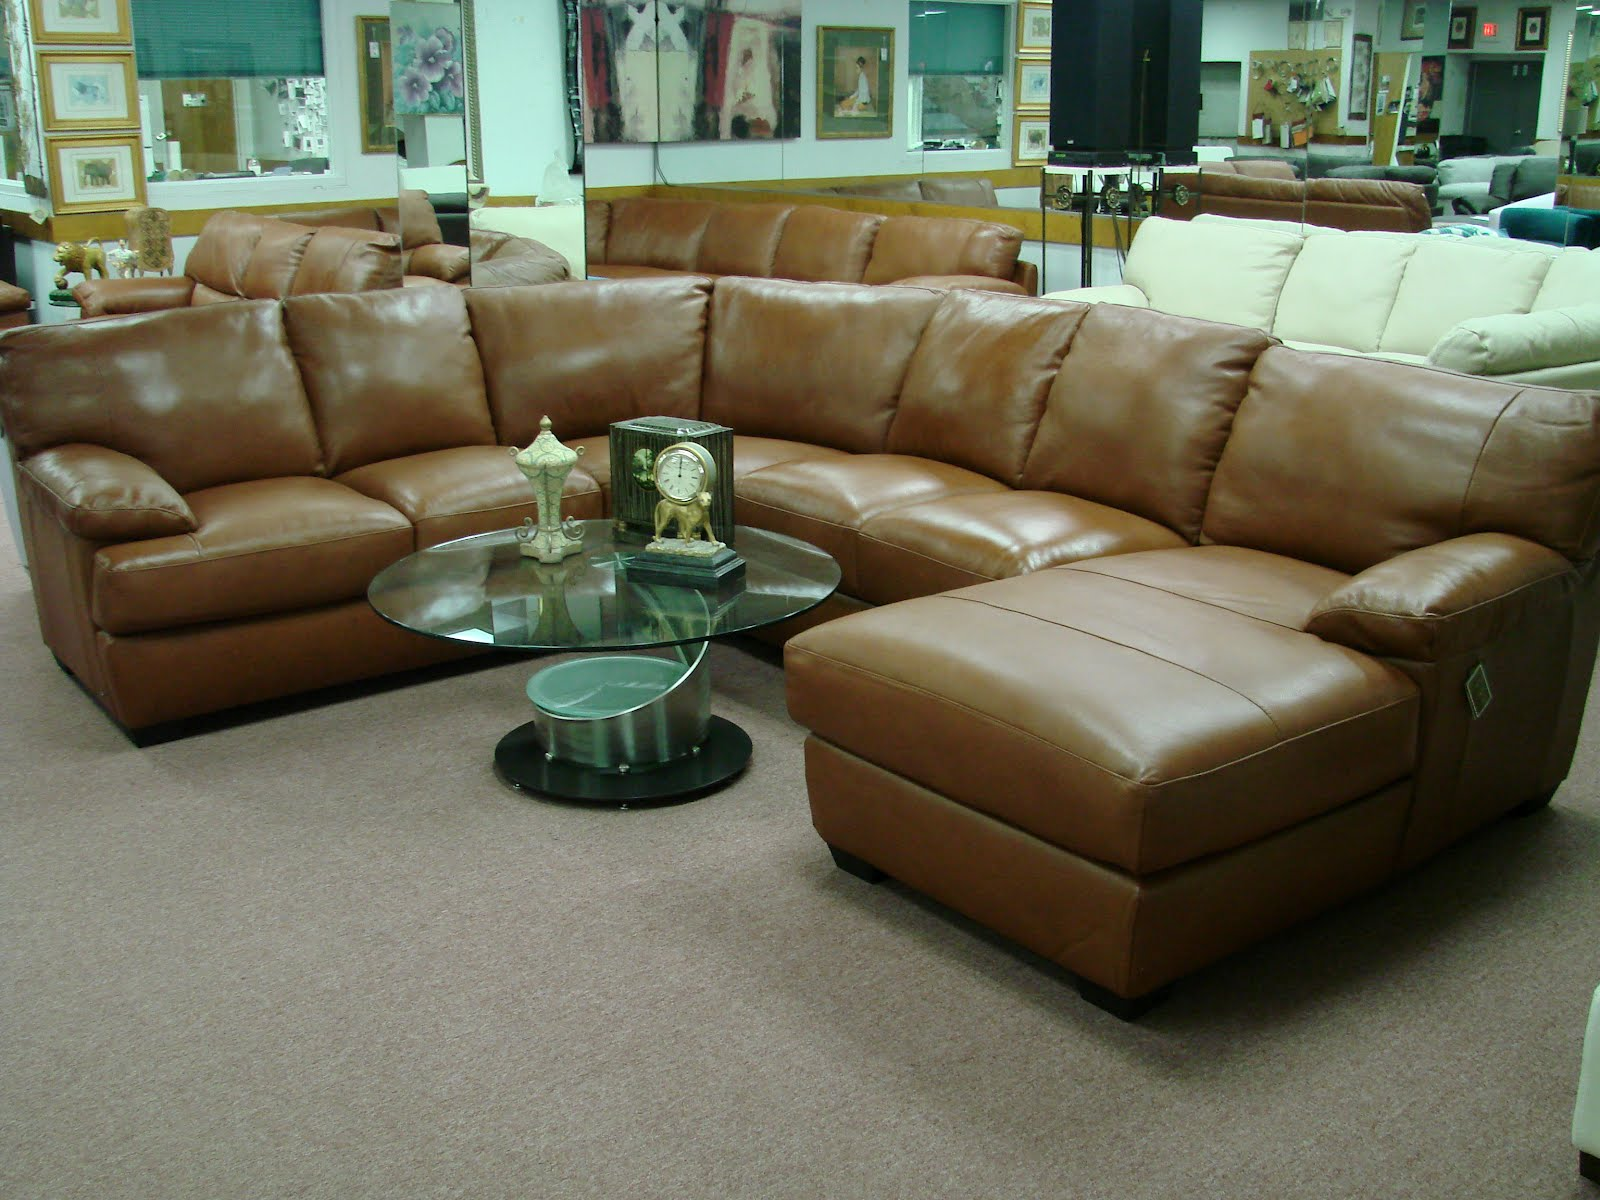 in image philadelphia used dealer furniture featured stores new products office icon pa